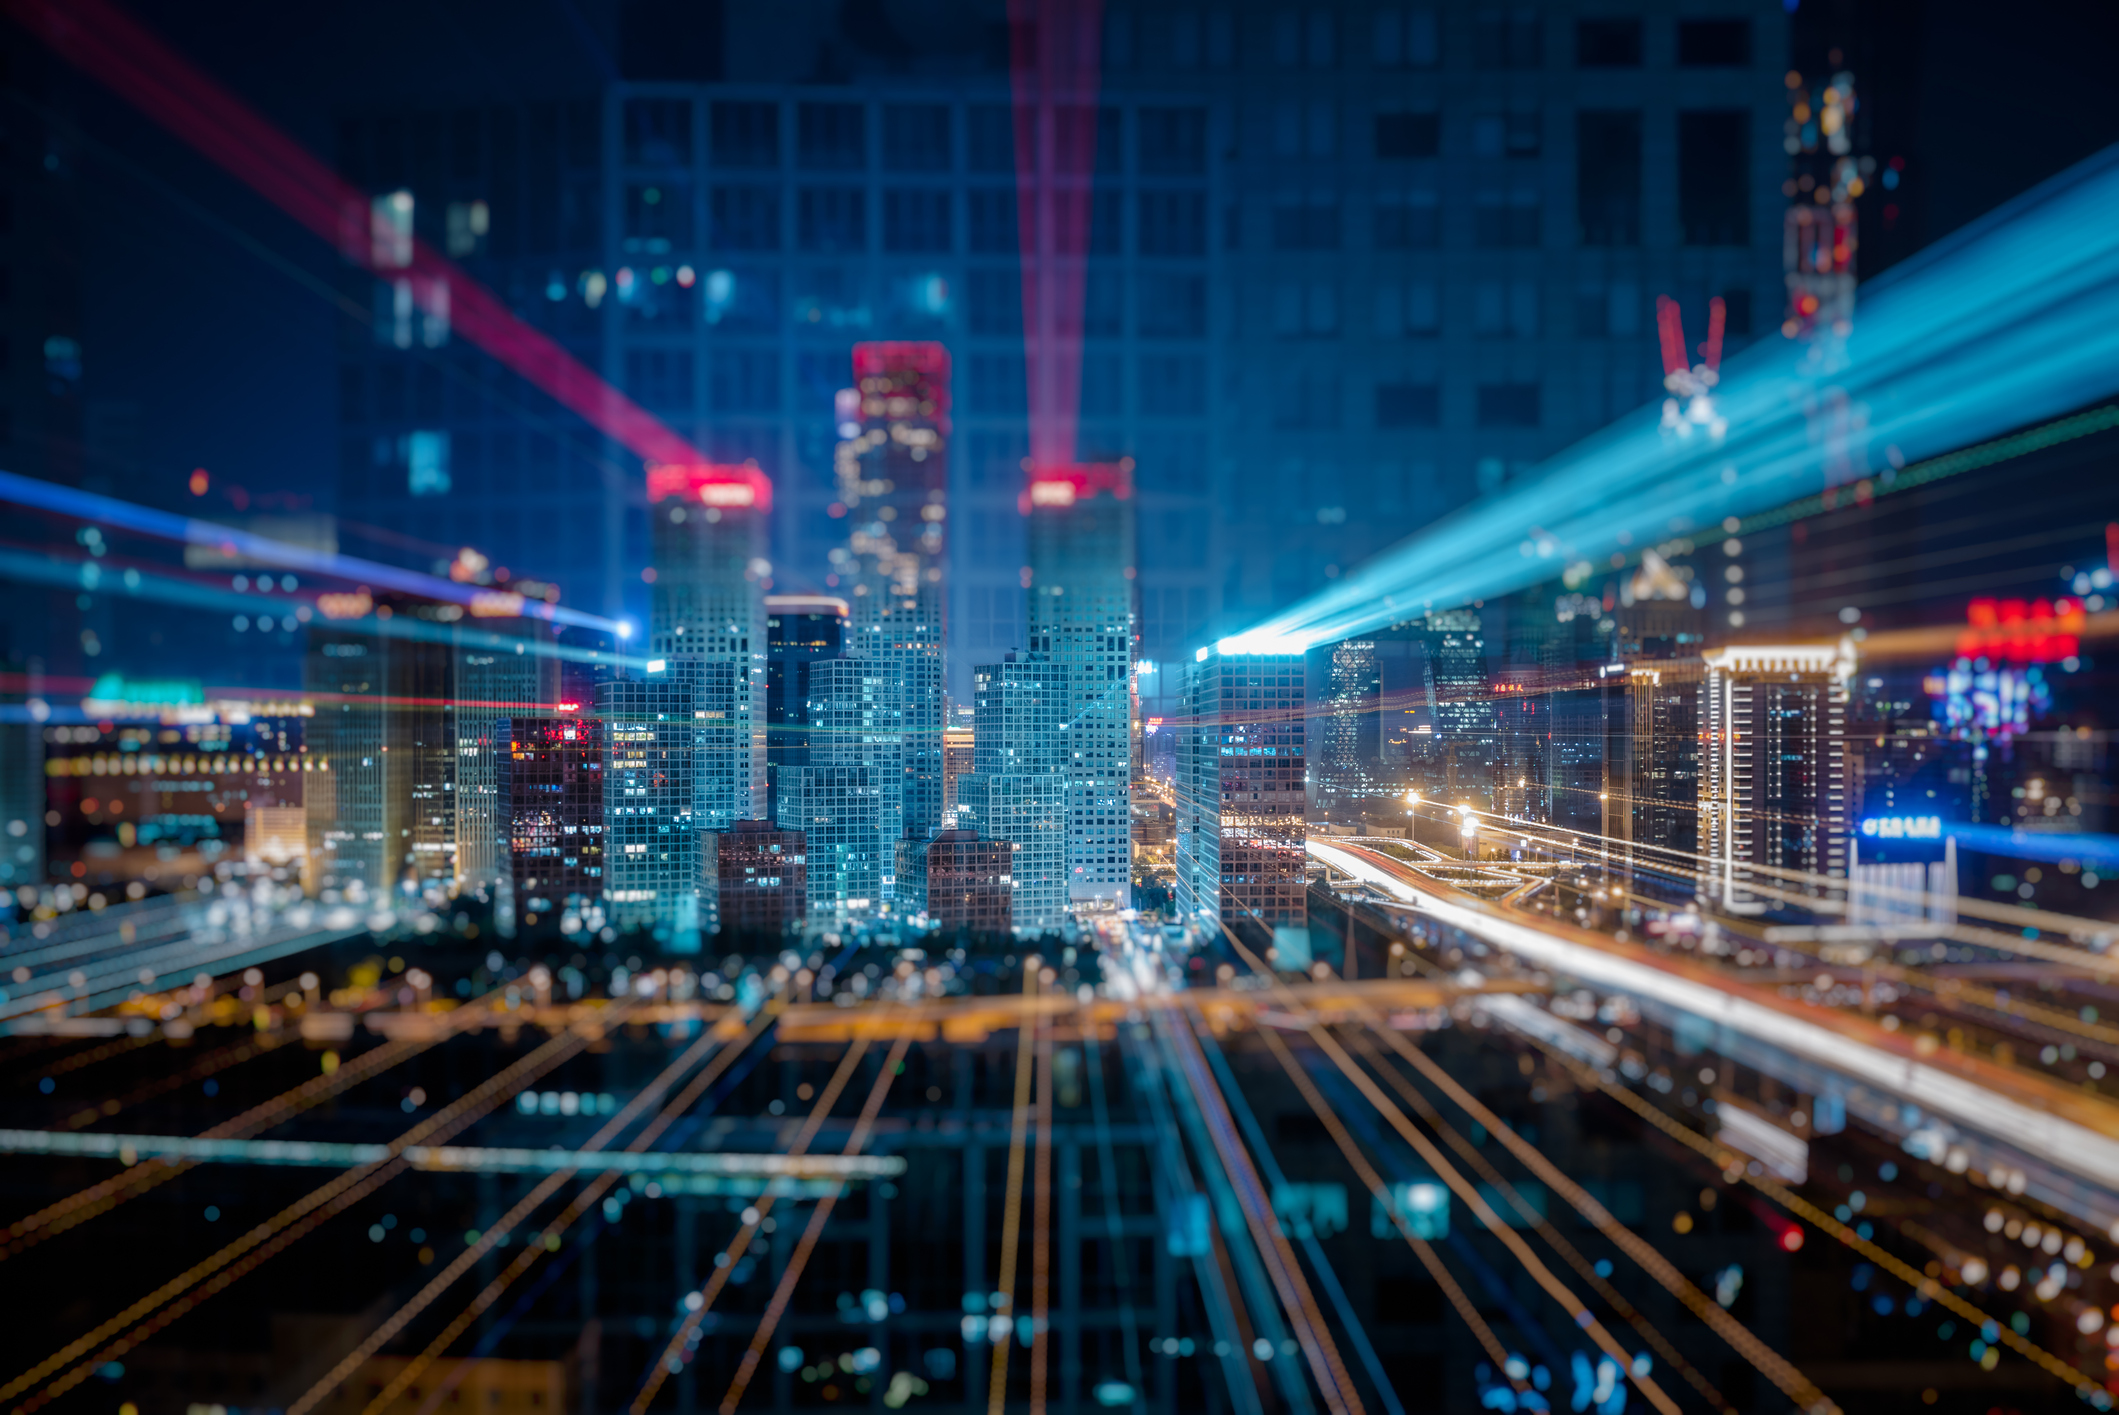 Trending News: Smart Cities Market 2020 | Industry Trends, COVID-19 Impact Analysis, Share, Size, Demand and Future Scope